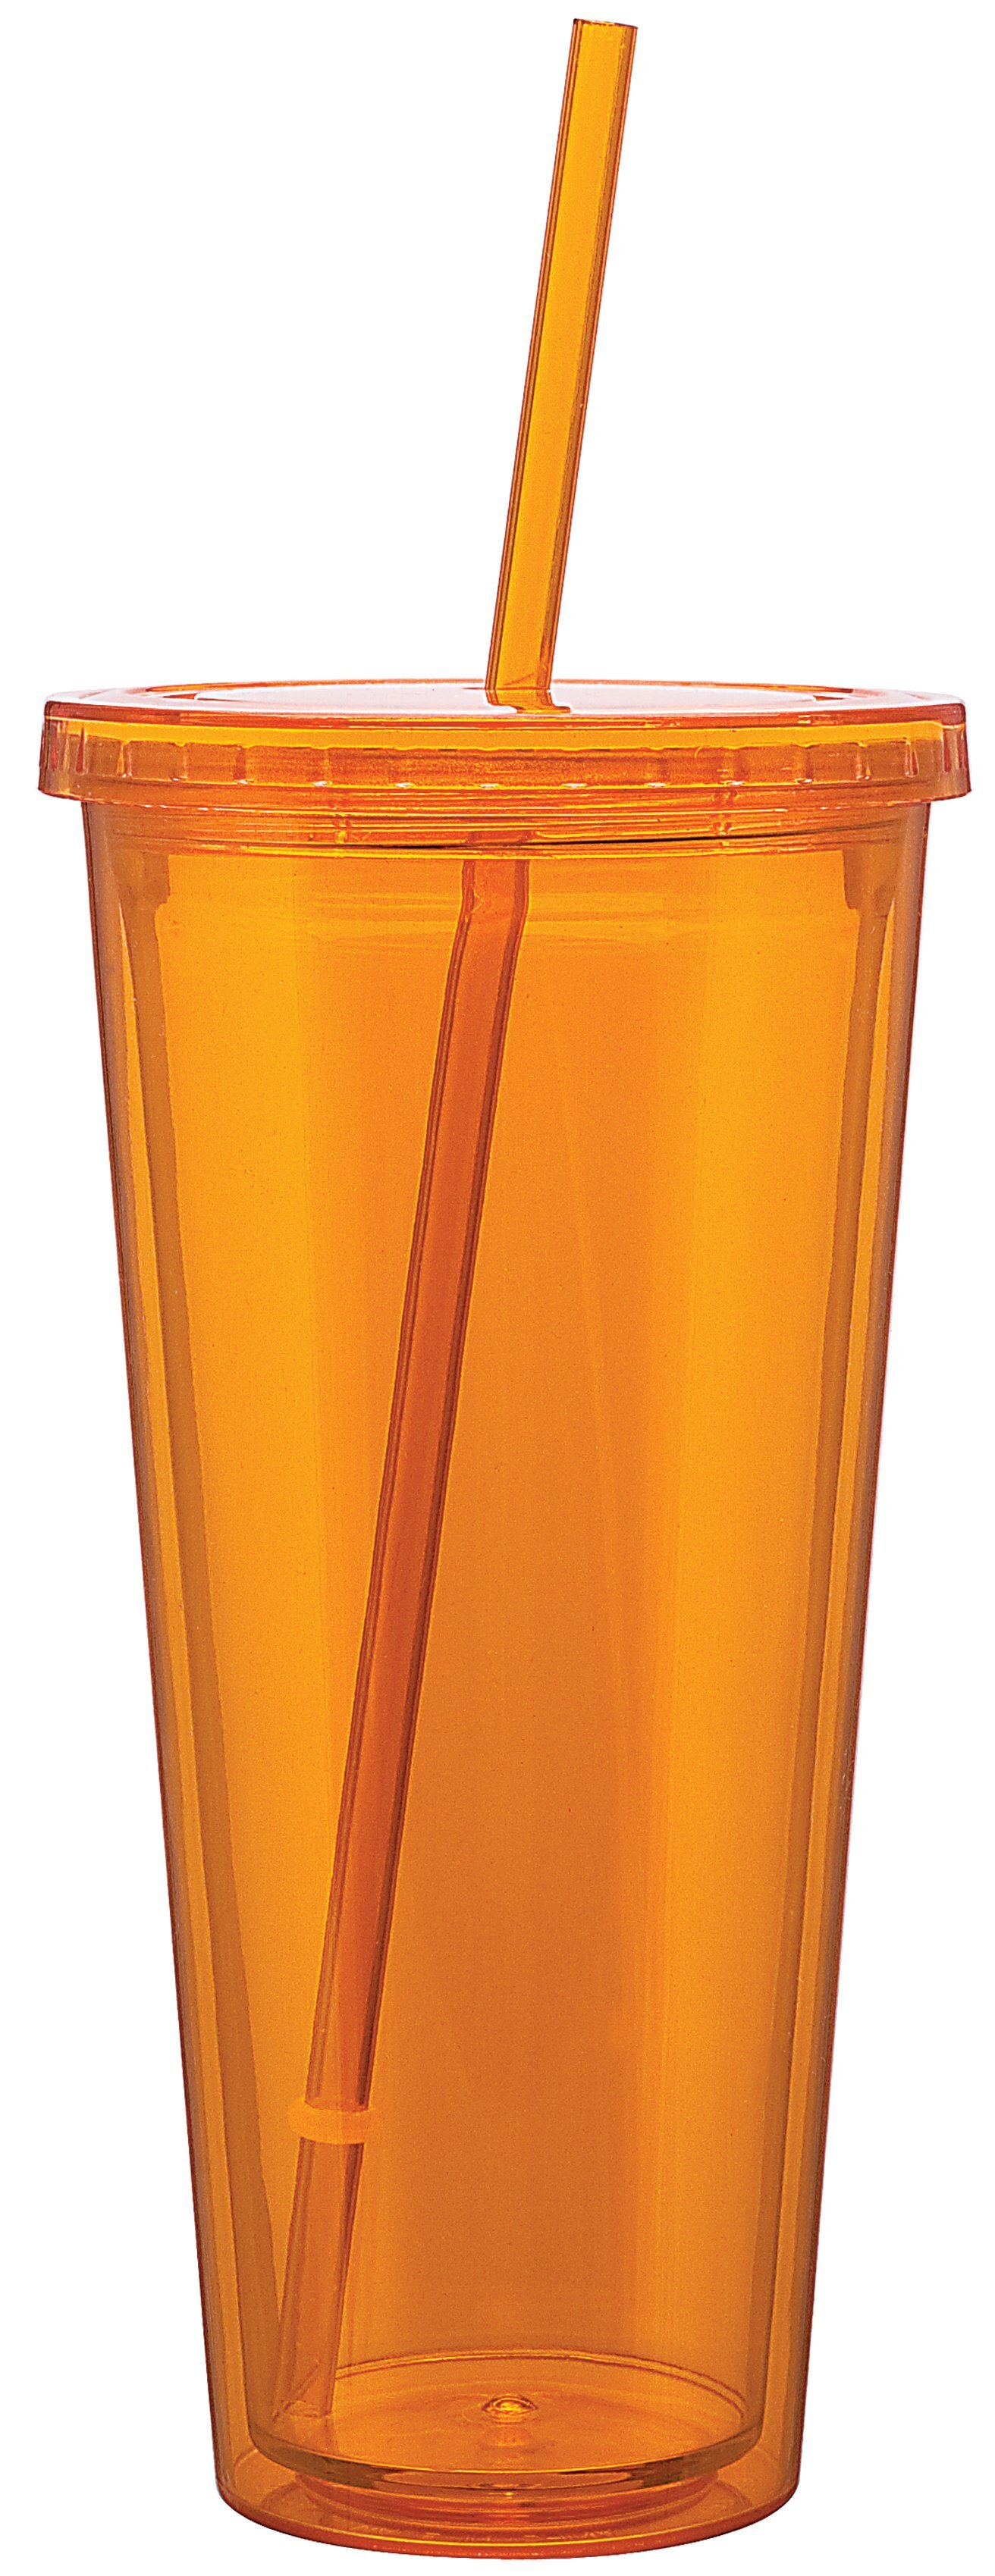 Contempo Acrylic Beverage Tumbler with Straw, 20 oz.